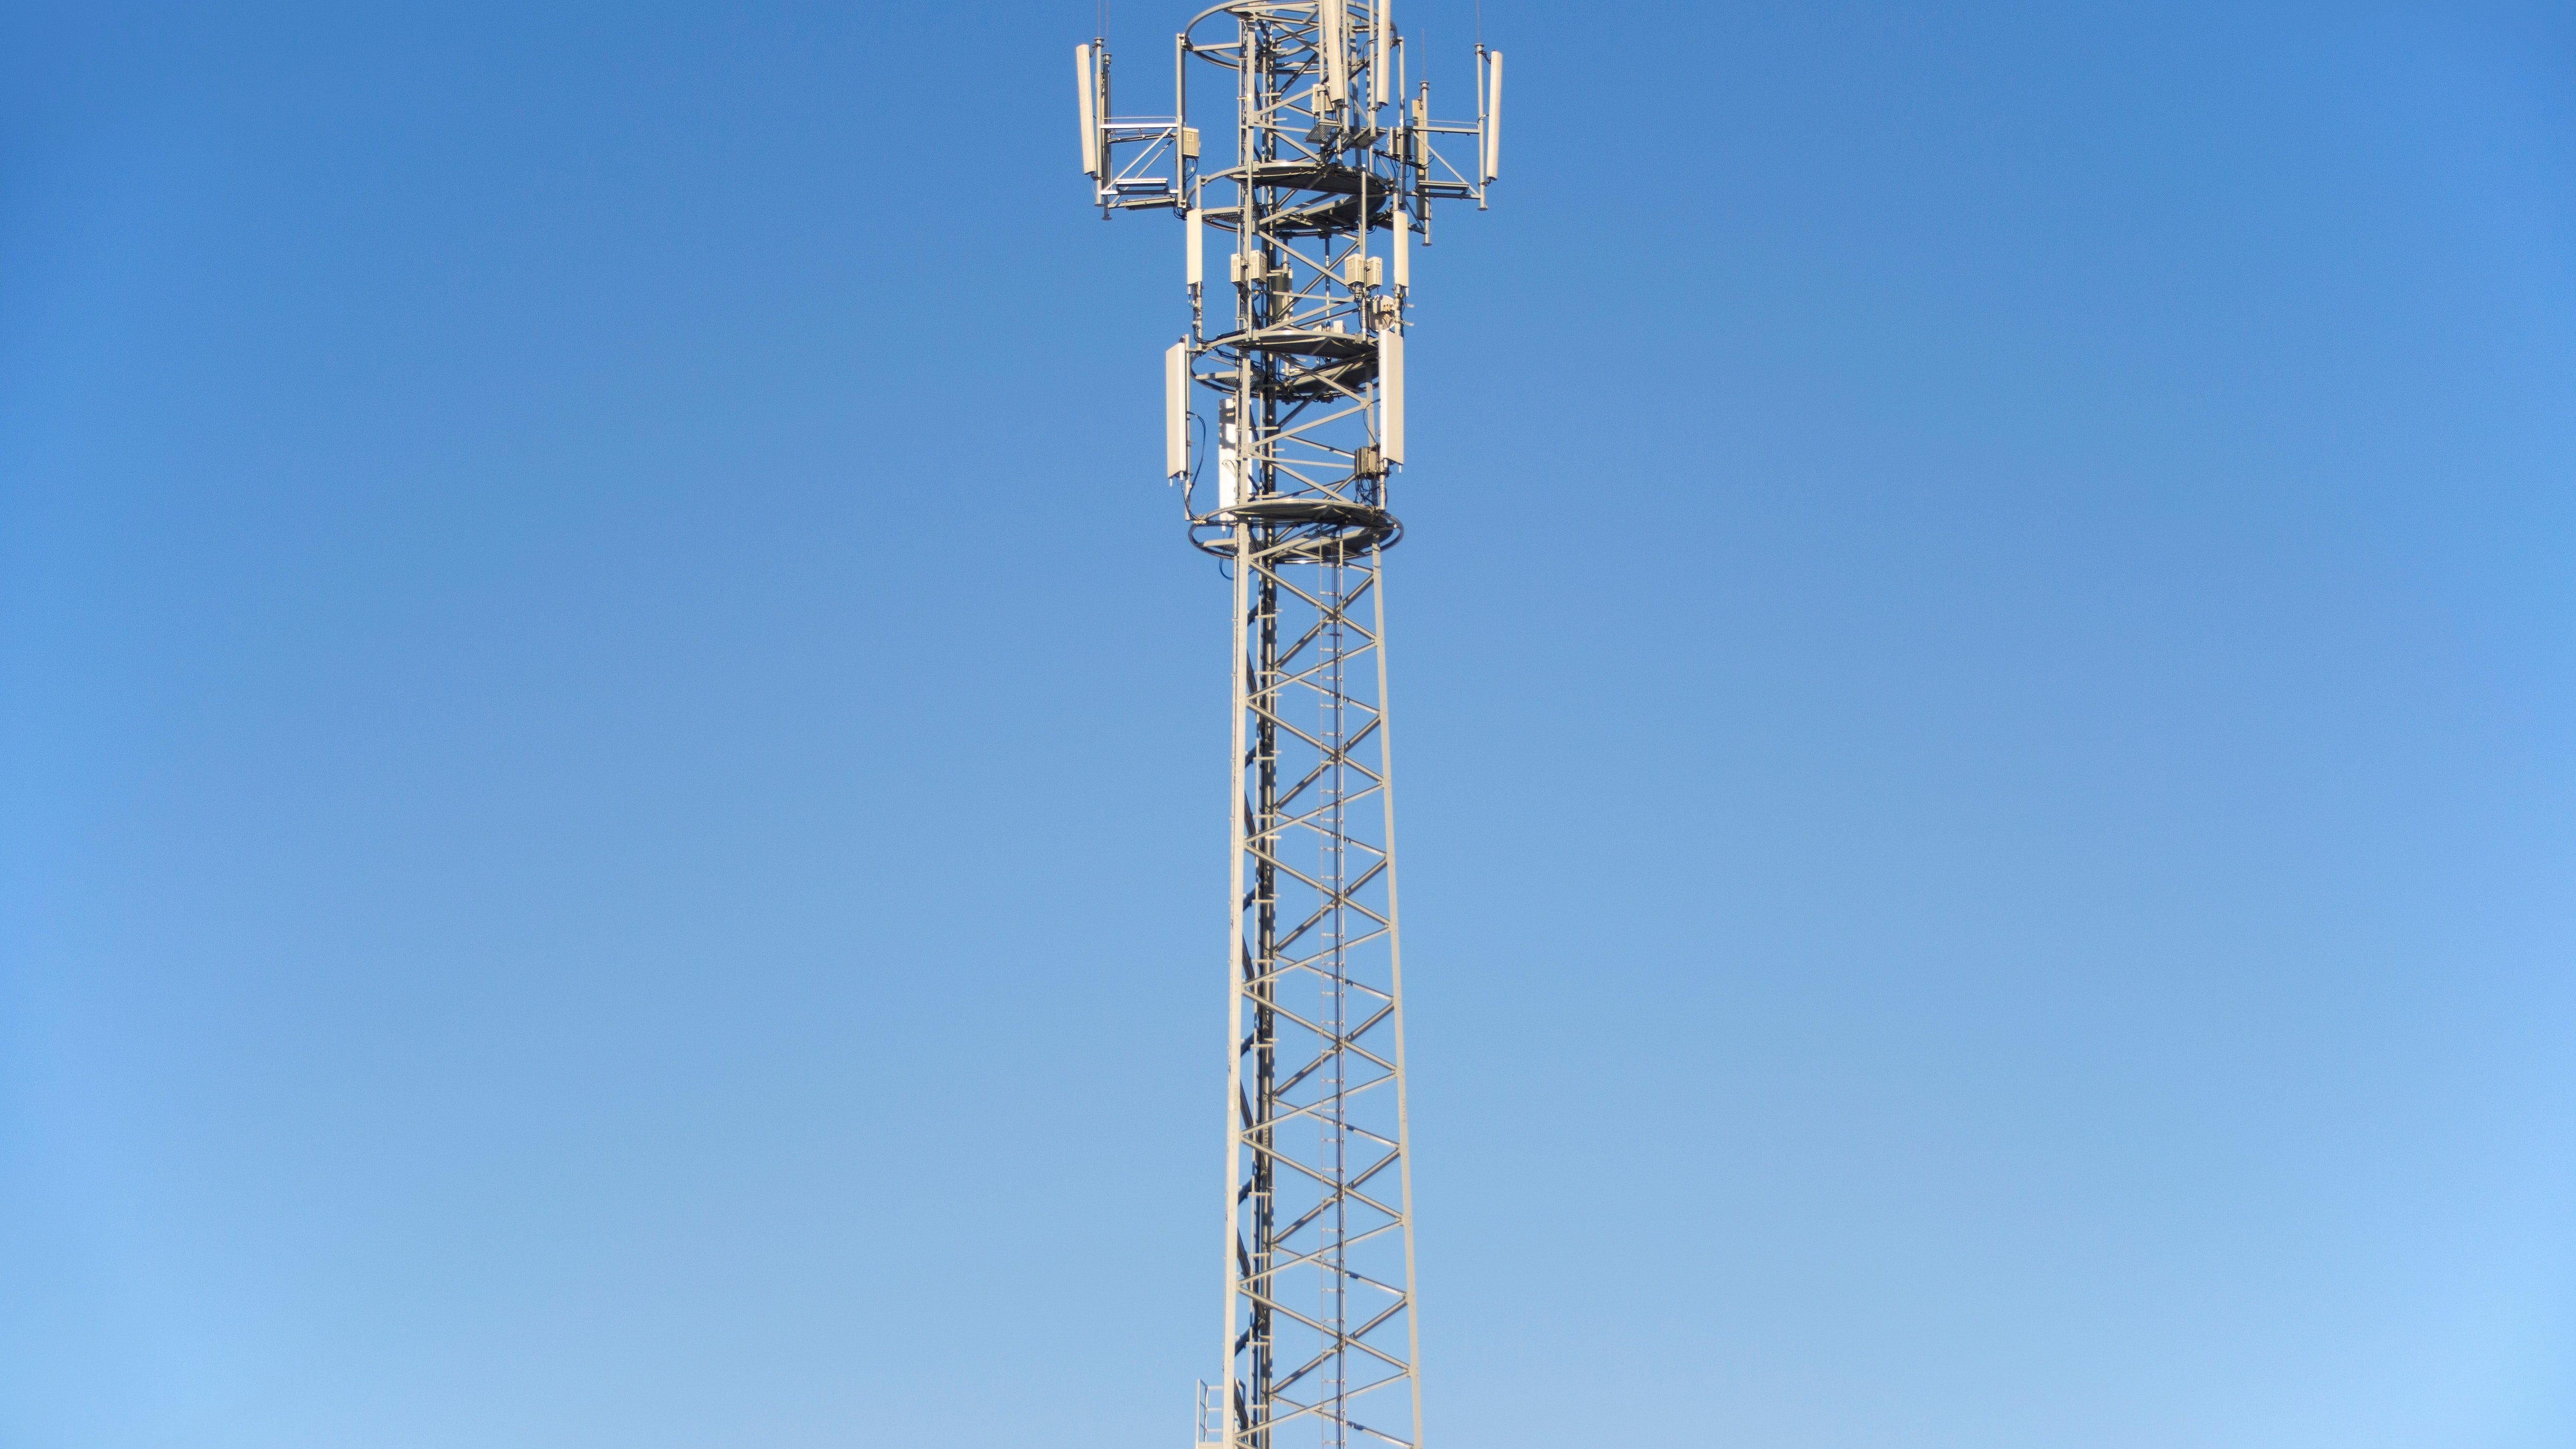 antenna-blue-sky-cell-tower